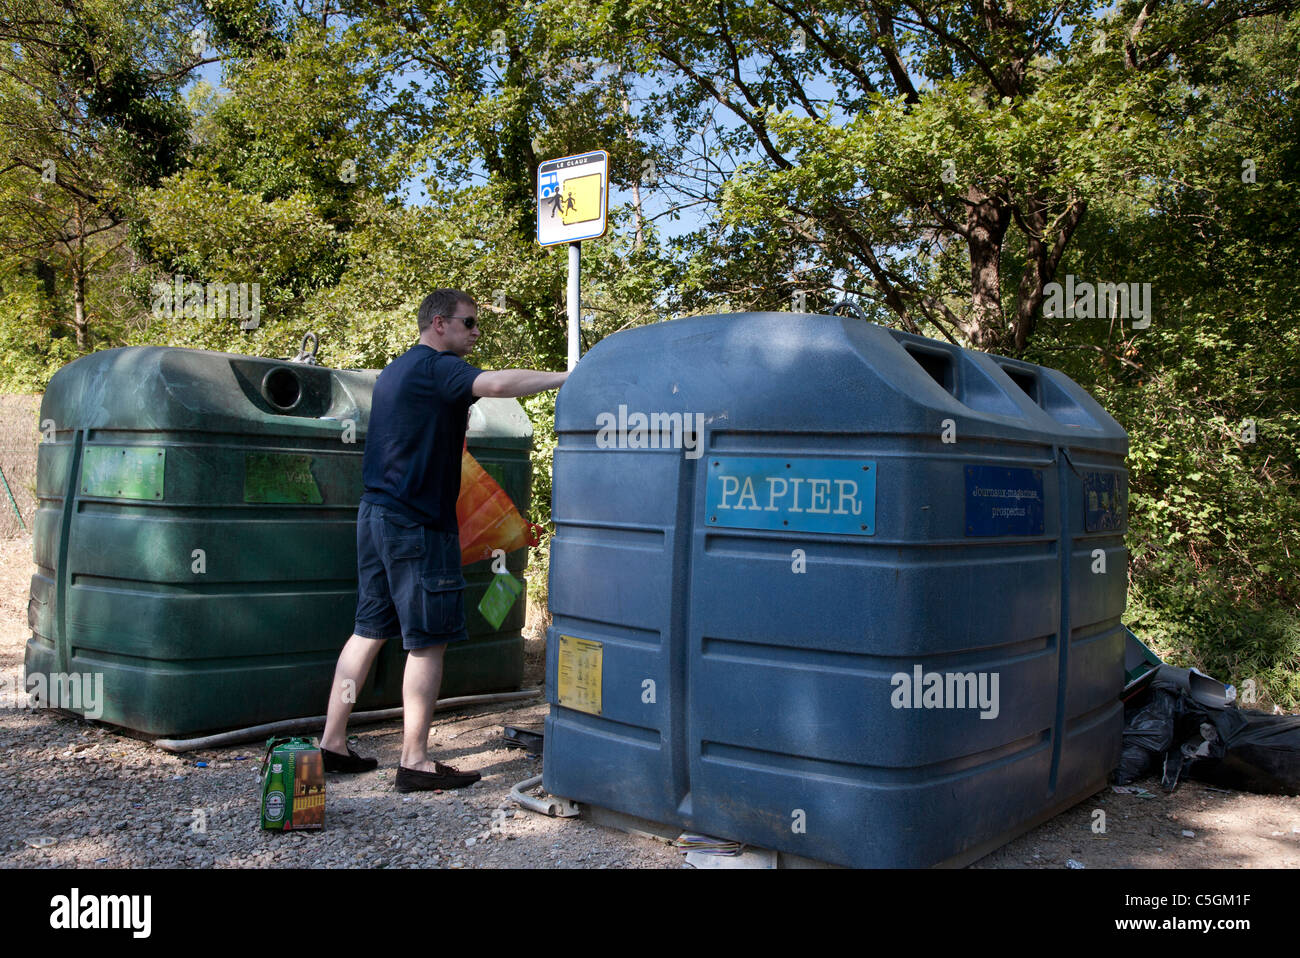 Man using recycle bins in Provence, France Stock Photo